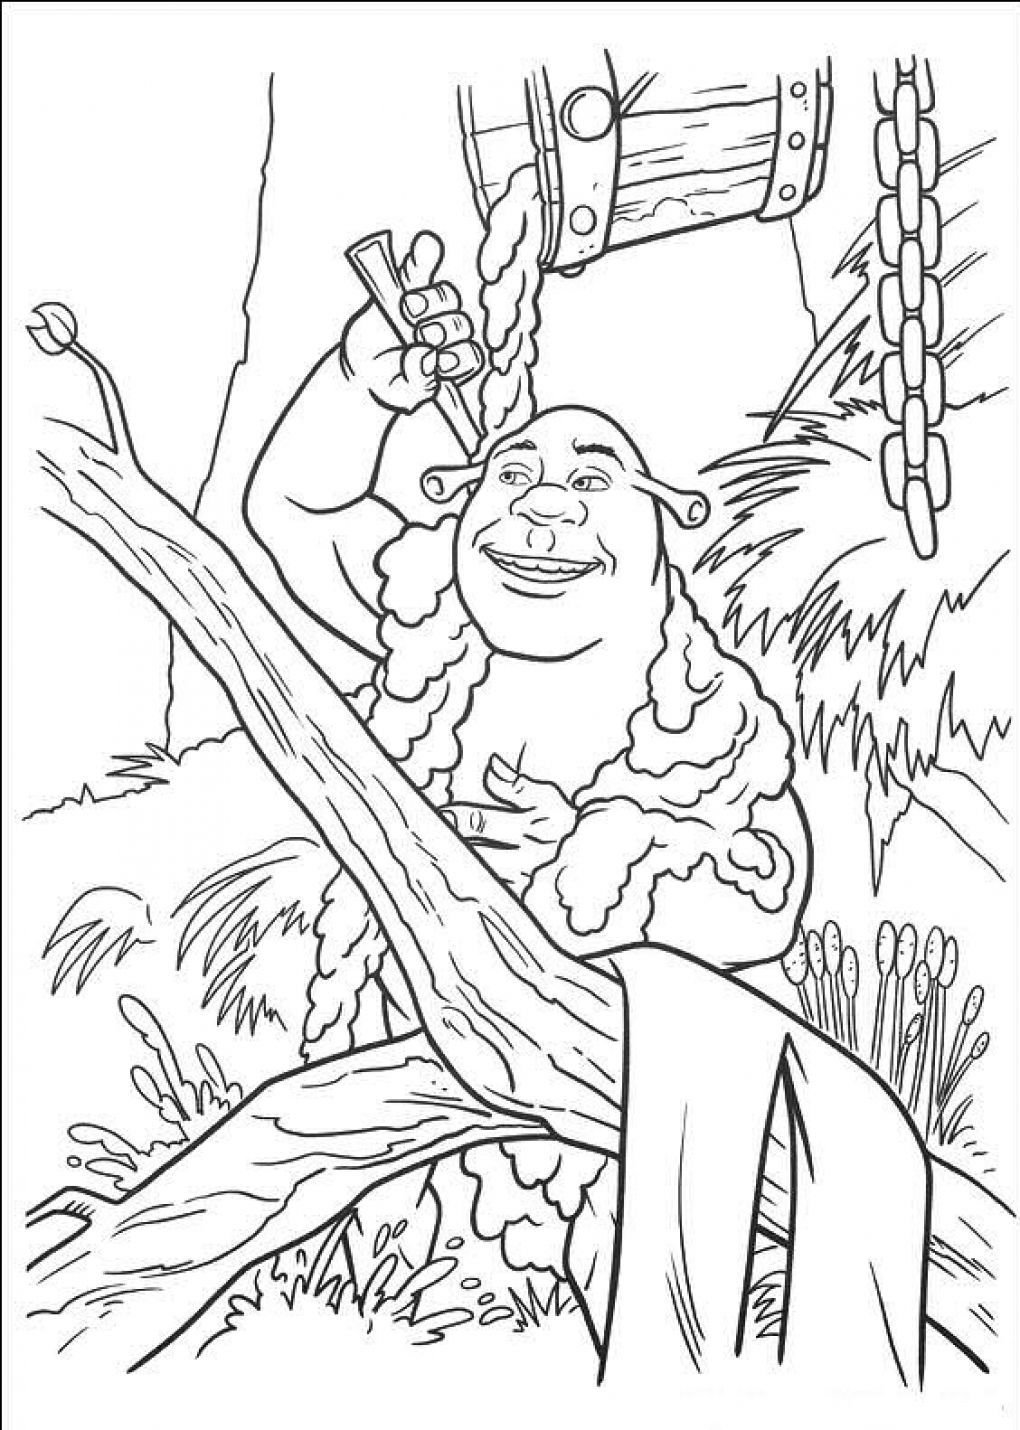 Coloring-Pages-of-Shrek.jpg (1020×1430) | Coloring Pages | Pinterest ...